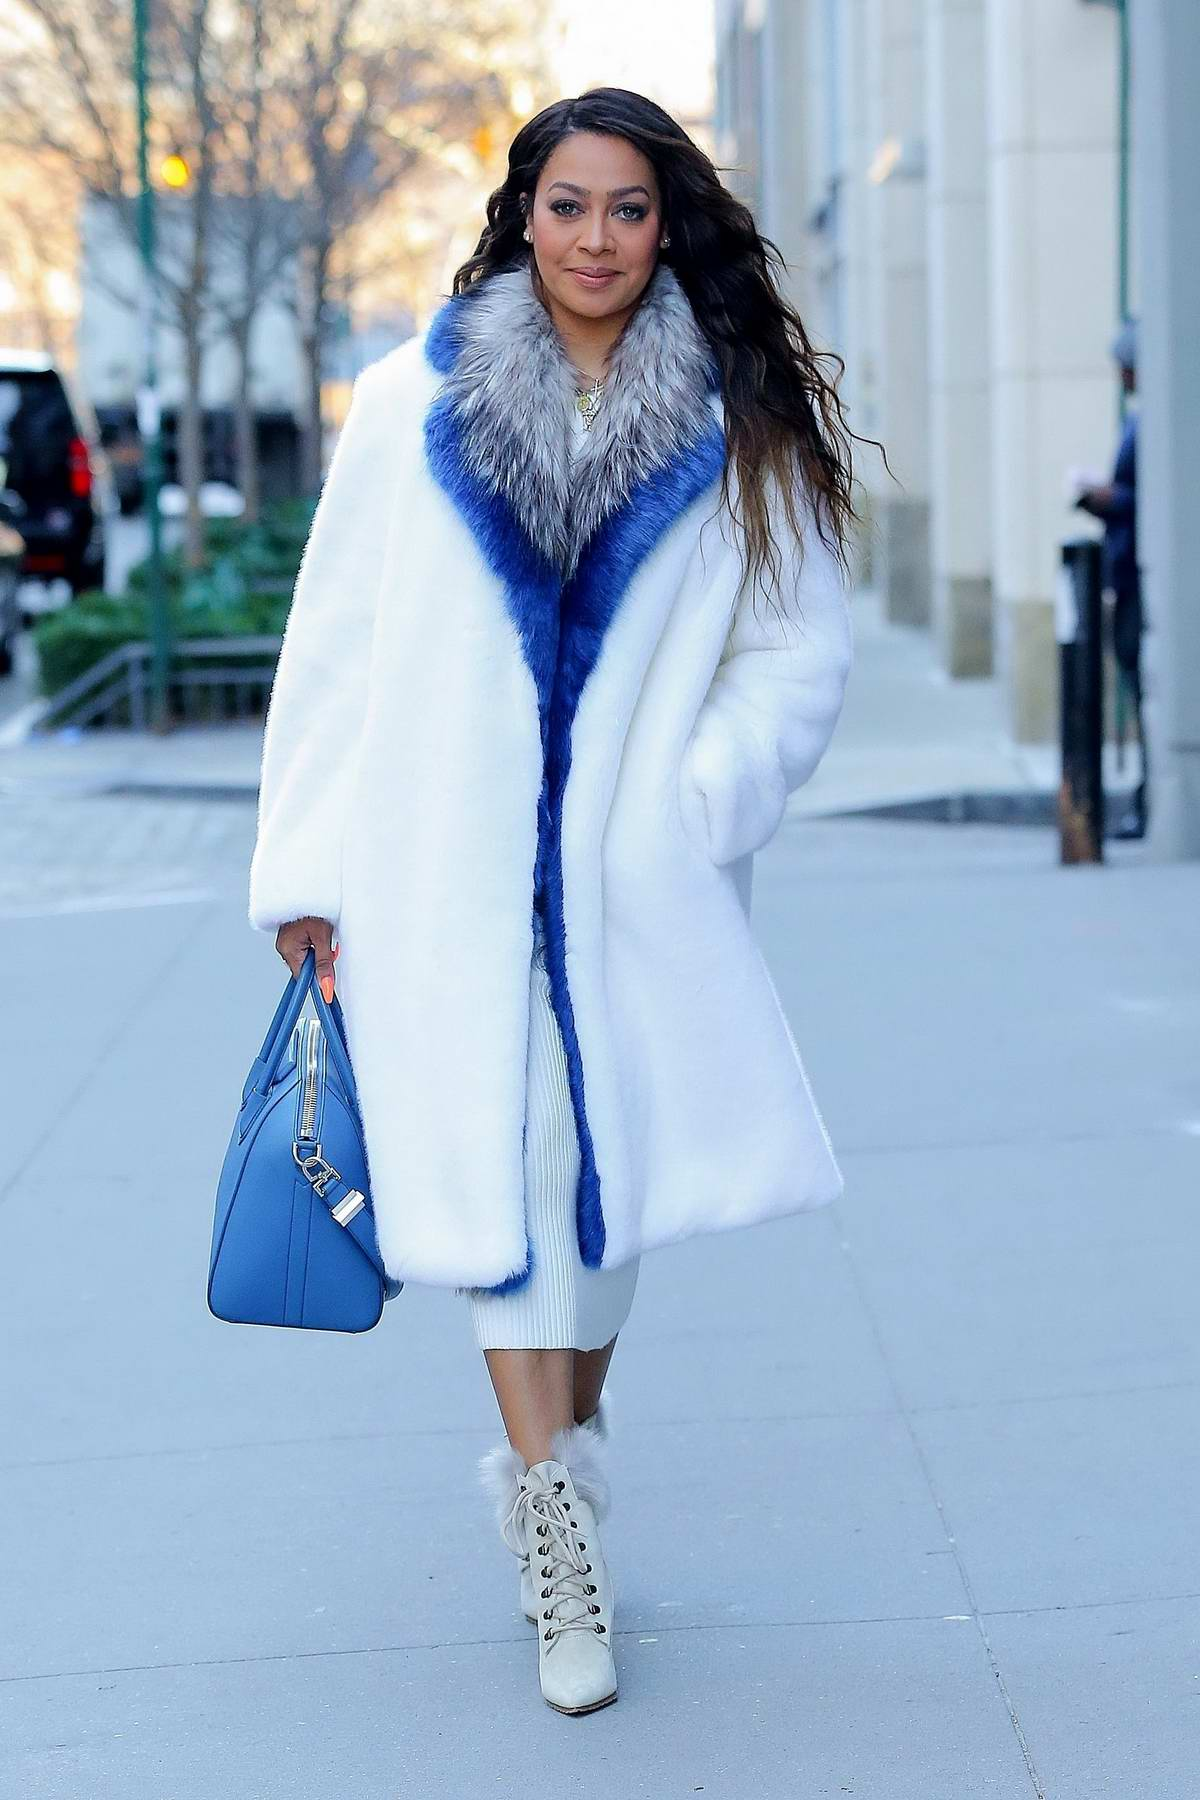 La La Anthony steps out in a white and blue winter inspired look in New York City